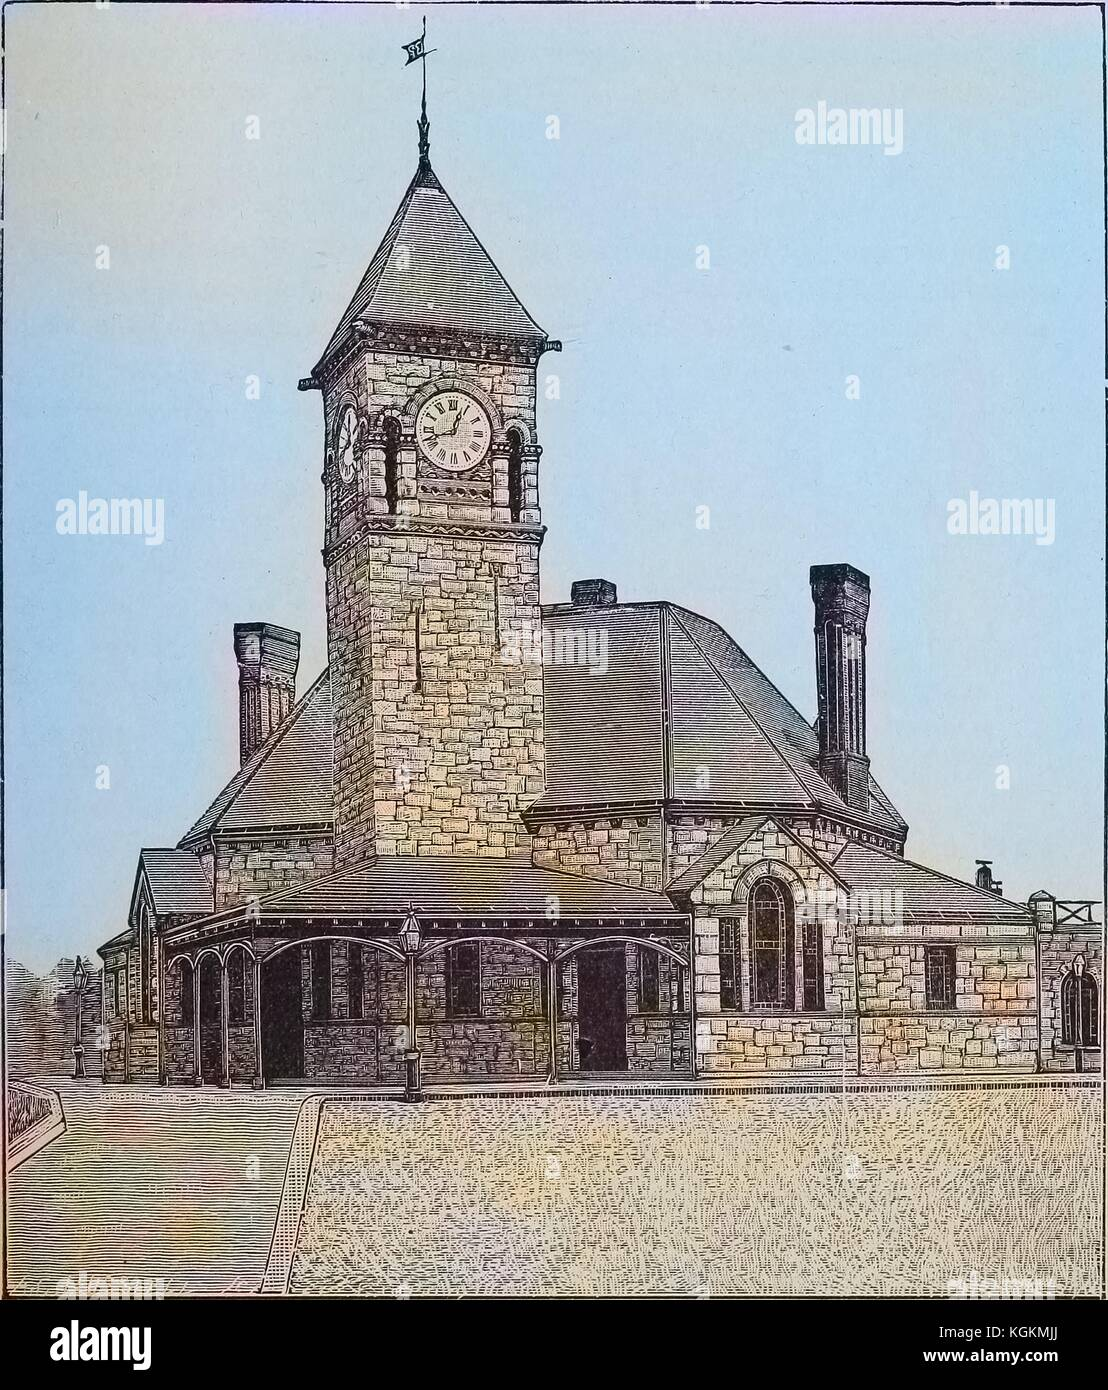 Engraved image of Dedham Station, a railroad station with a clock tower in Dedham, Massachusetts, 1893. Courtesy - Stock Image